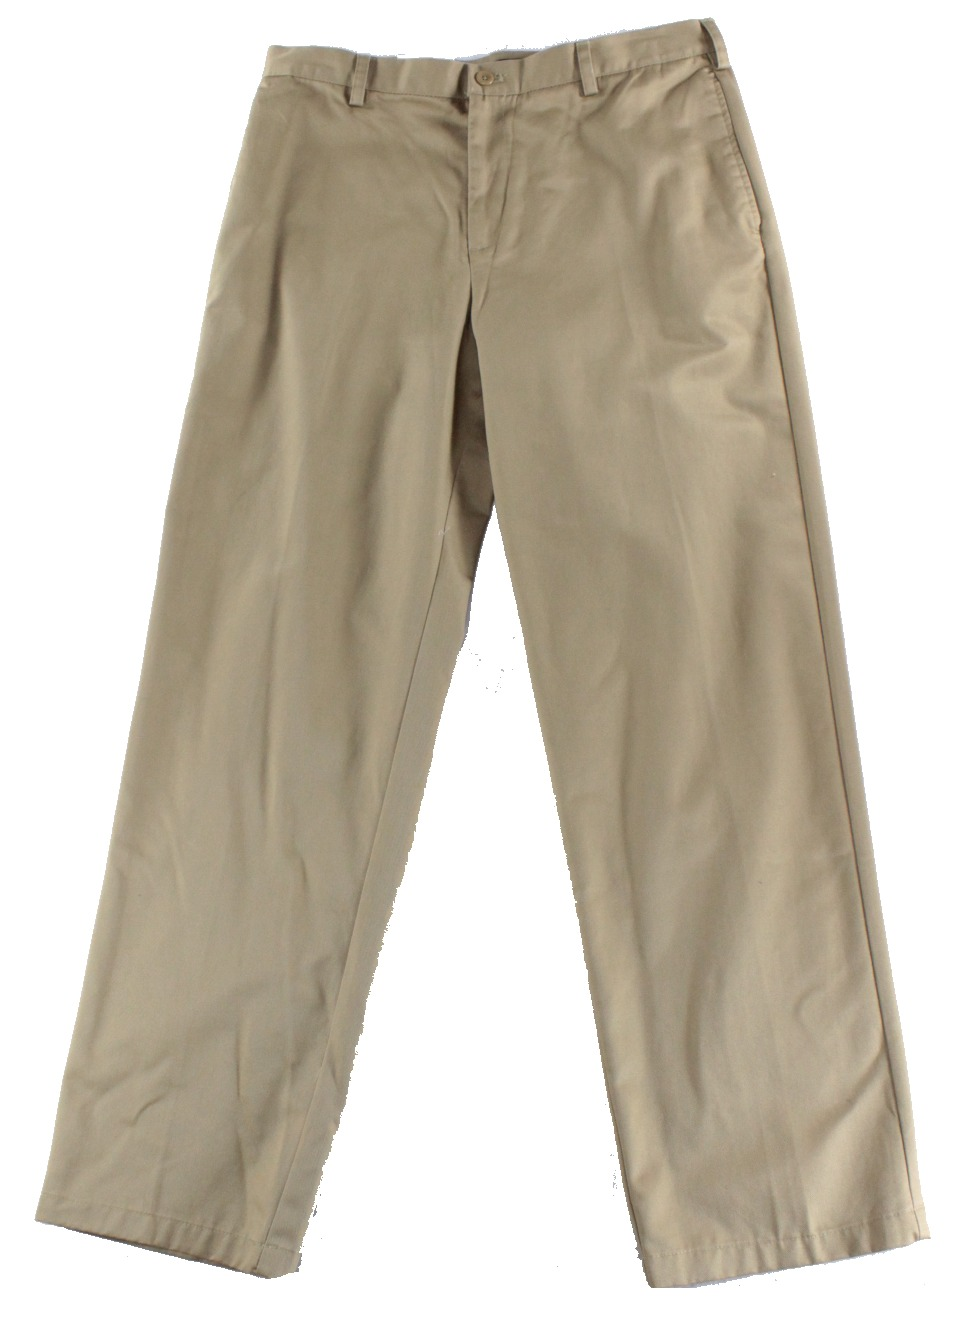 IZOD NEW Brown Mens 34x34 Wrinkle-Free Flat Front American Chino Pants